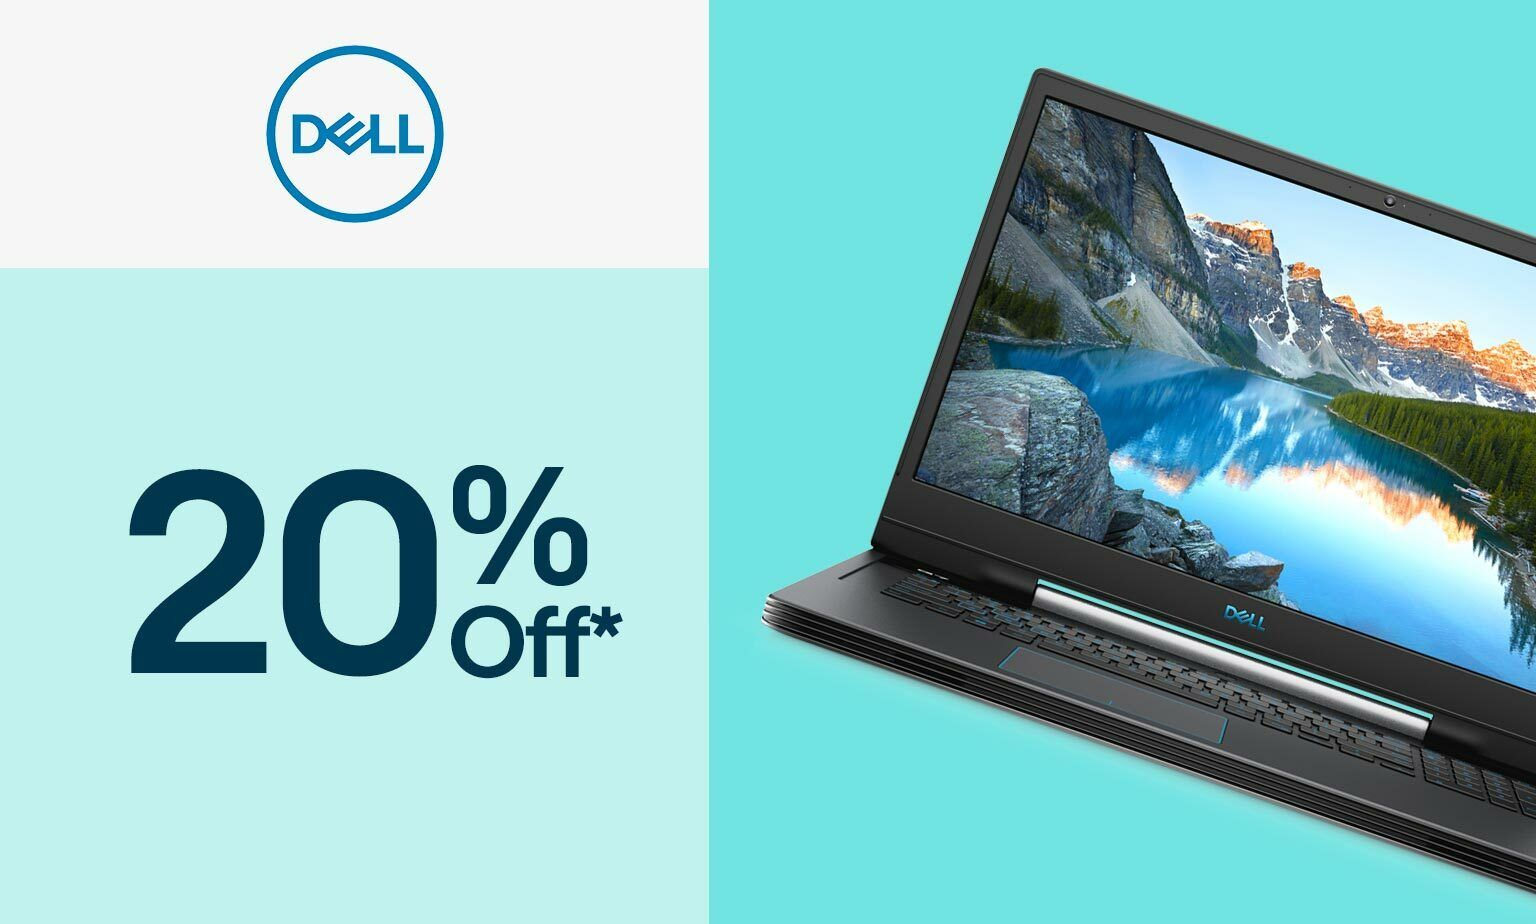 Storewide at Dell on eBay